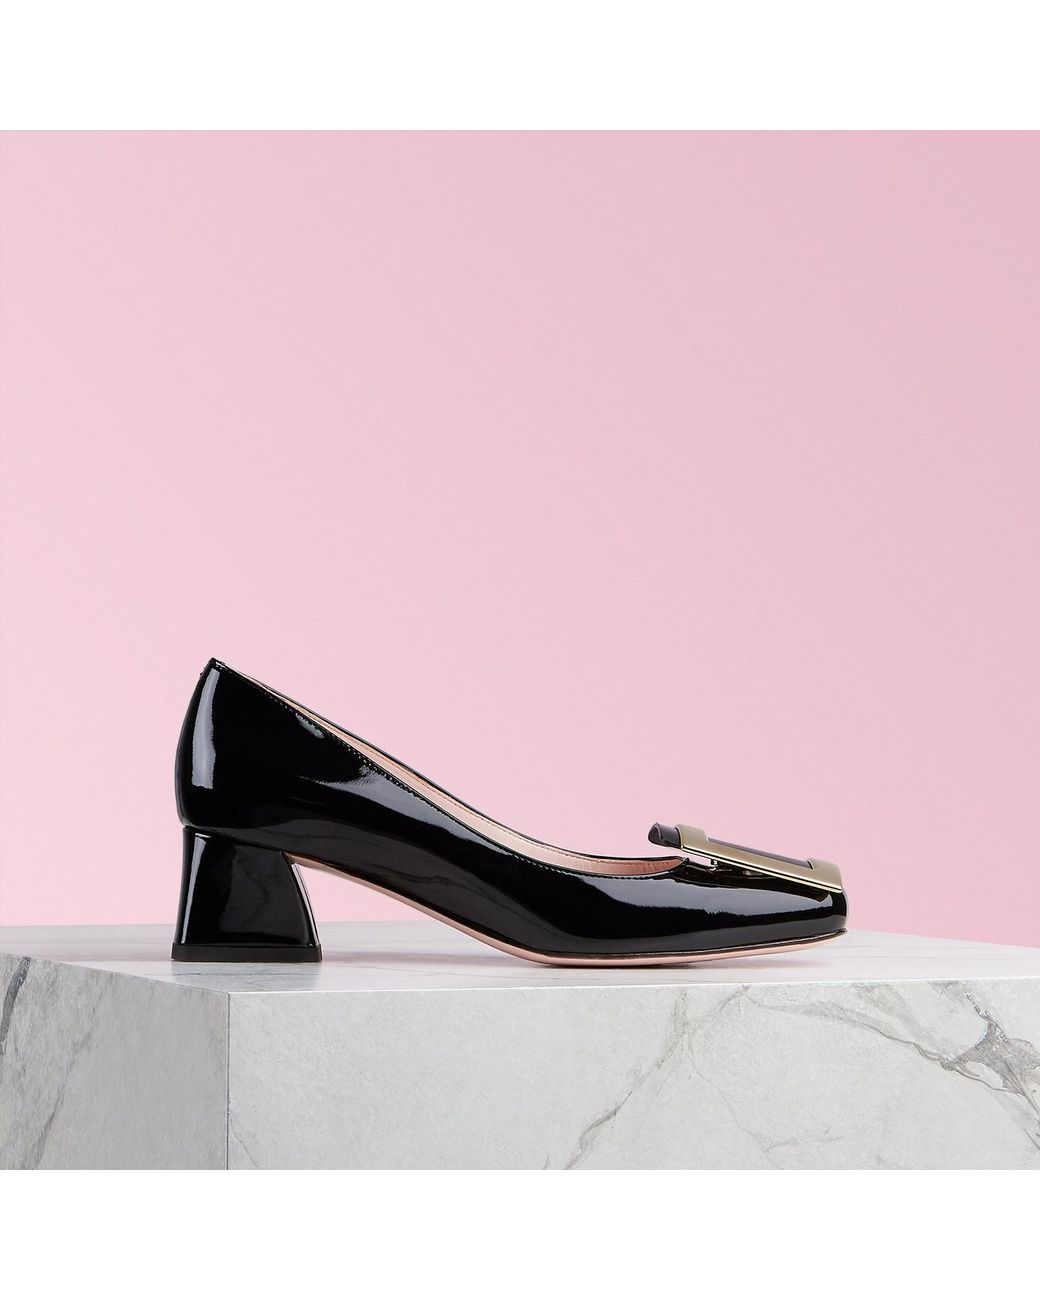 c1e00af936e Lyst - Roger Vivier Très Vivier Metal Buckle Pumps in Black - Save 5%